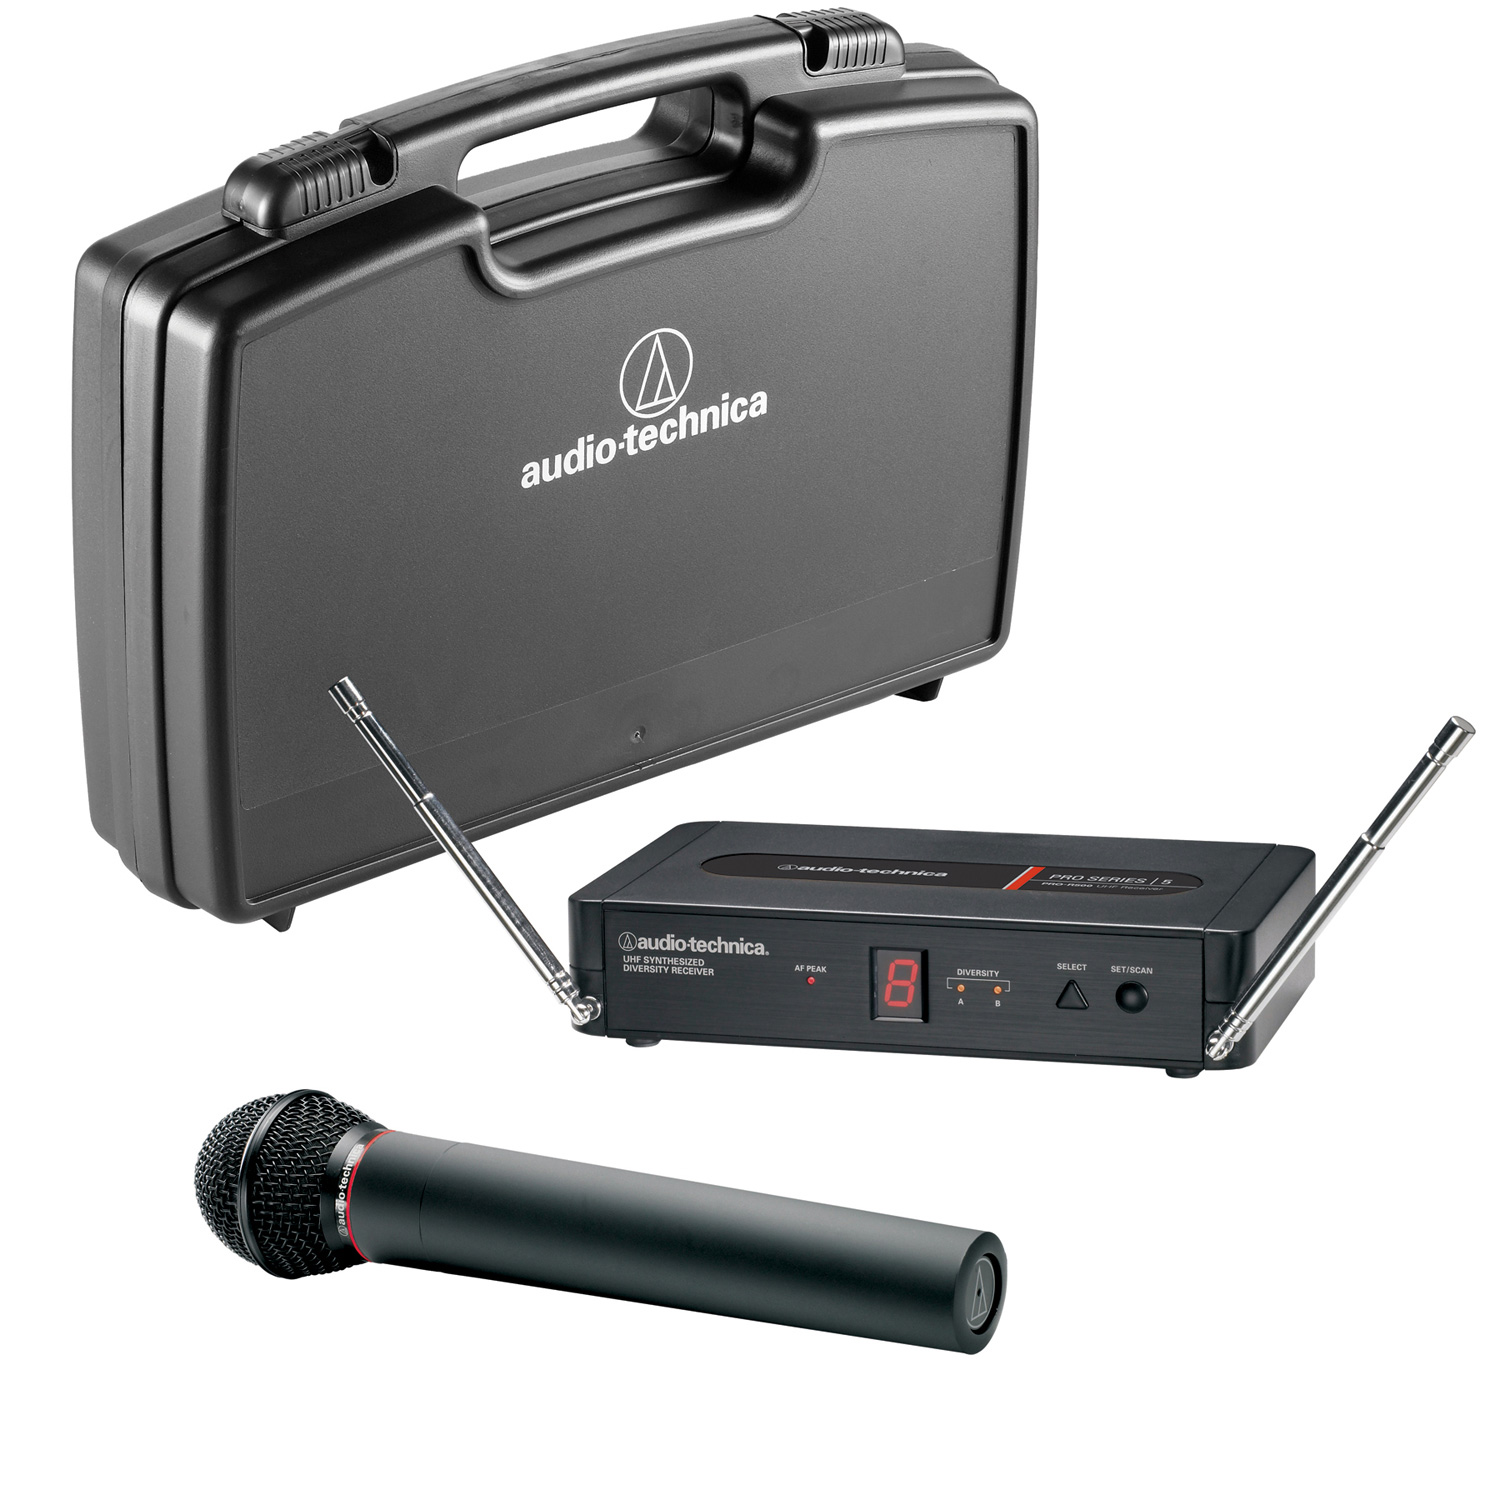 audio technica pro 5 series pro 502 dynamic wireless handheld microphone system. Black Bedroom Furniture Sets. Home Design Ideas